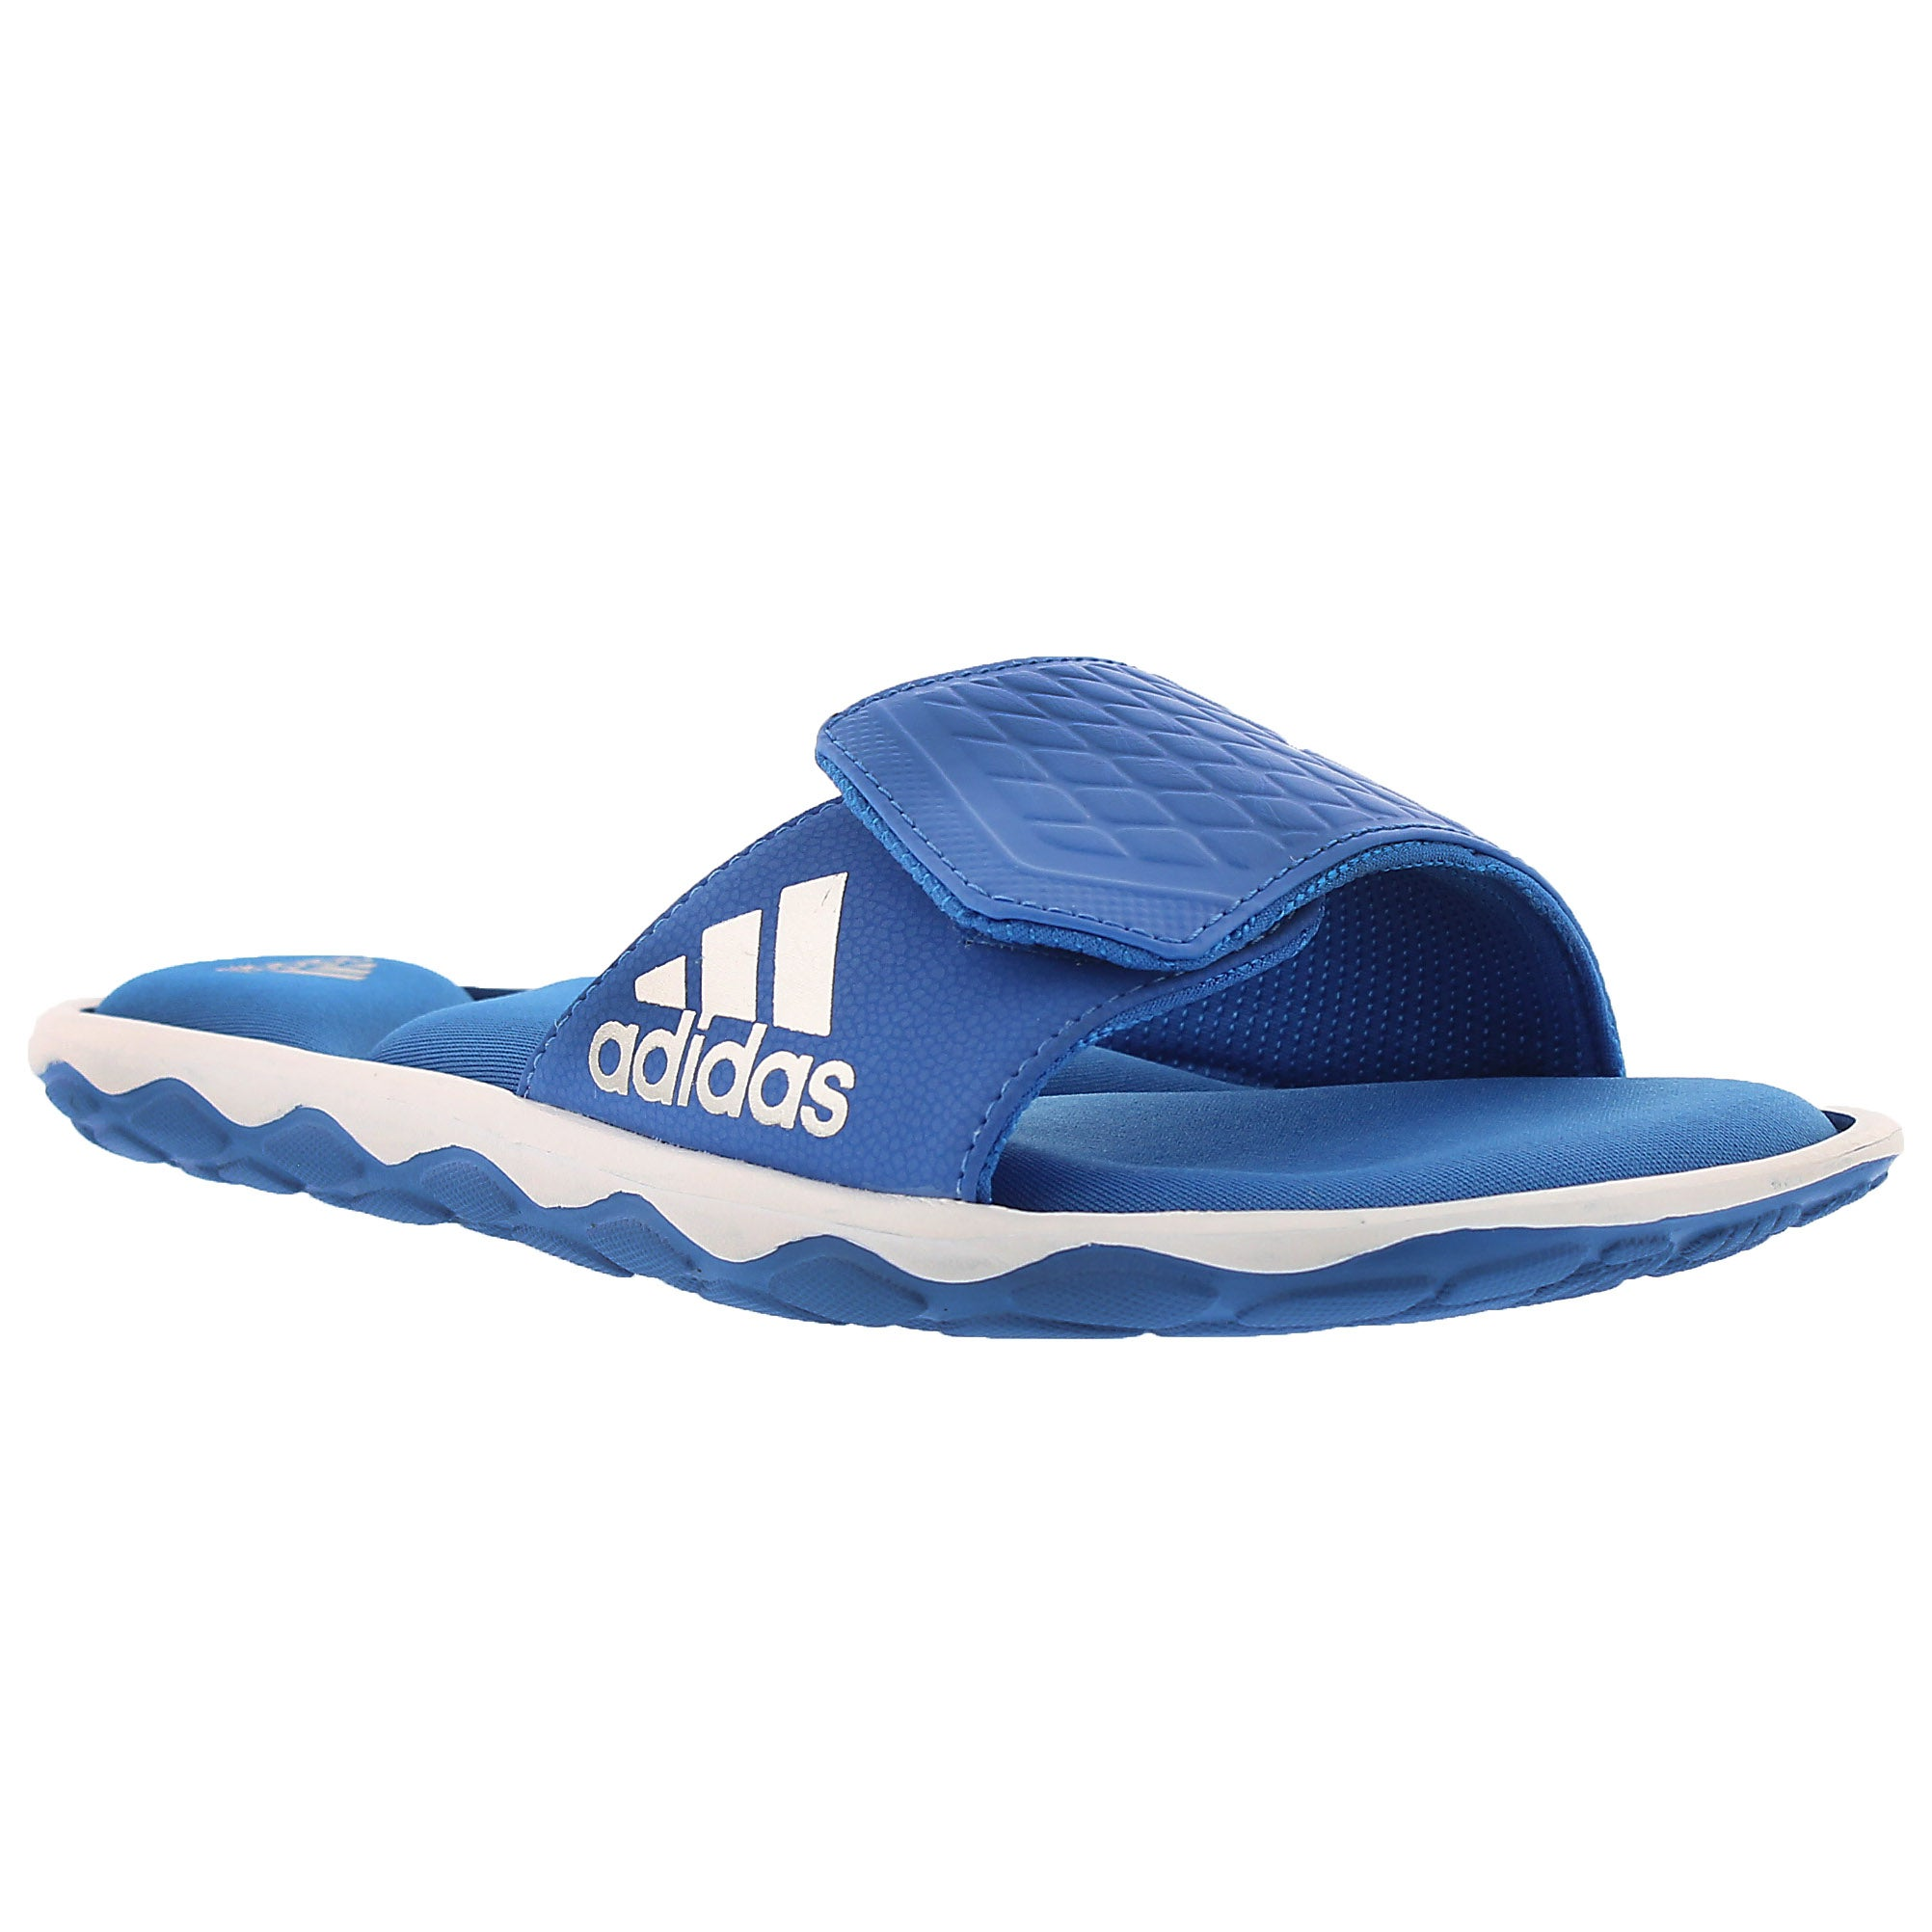 New Beautiful Adidas Superstar II Women Shoes Blue White Adidas Shoes